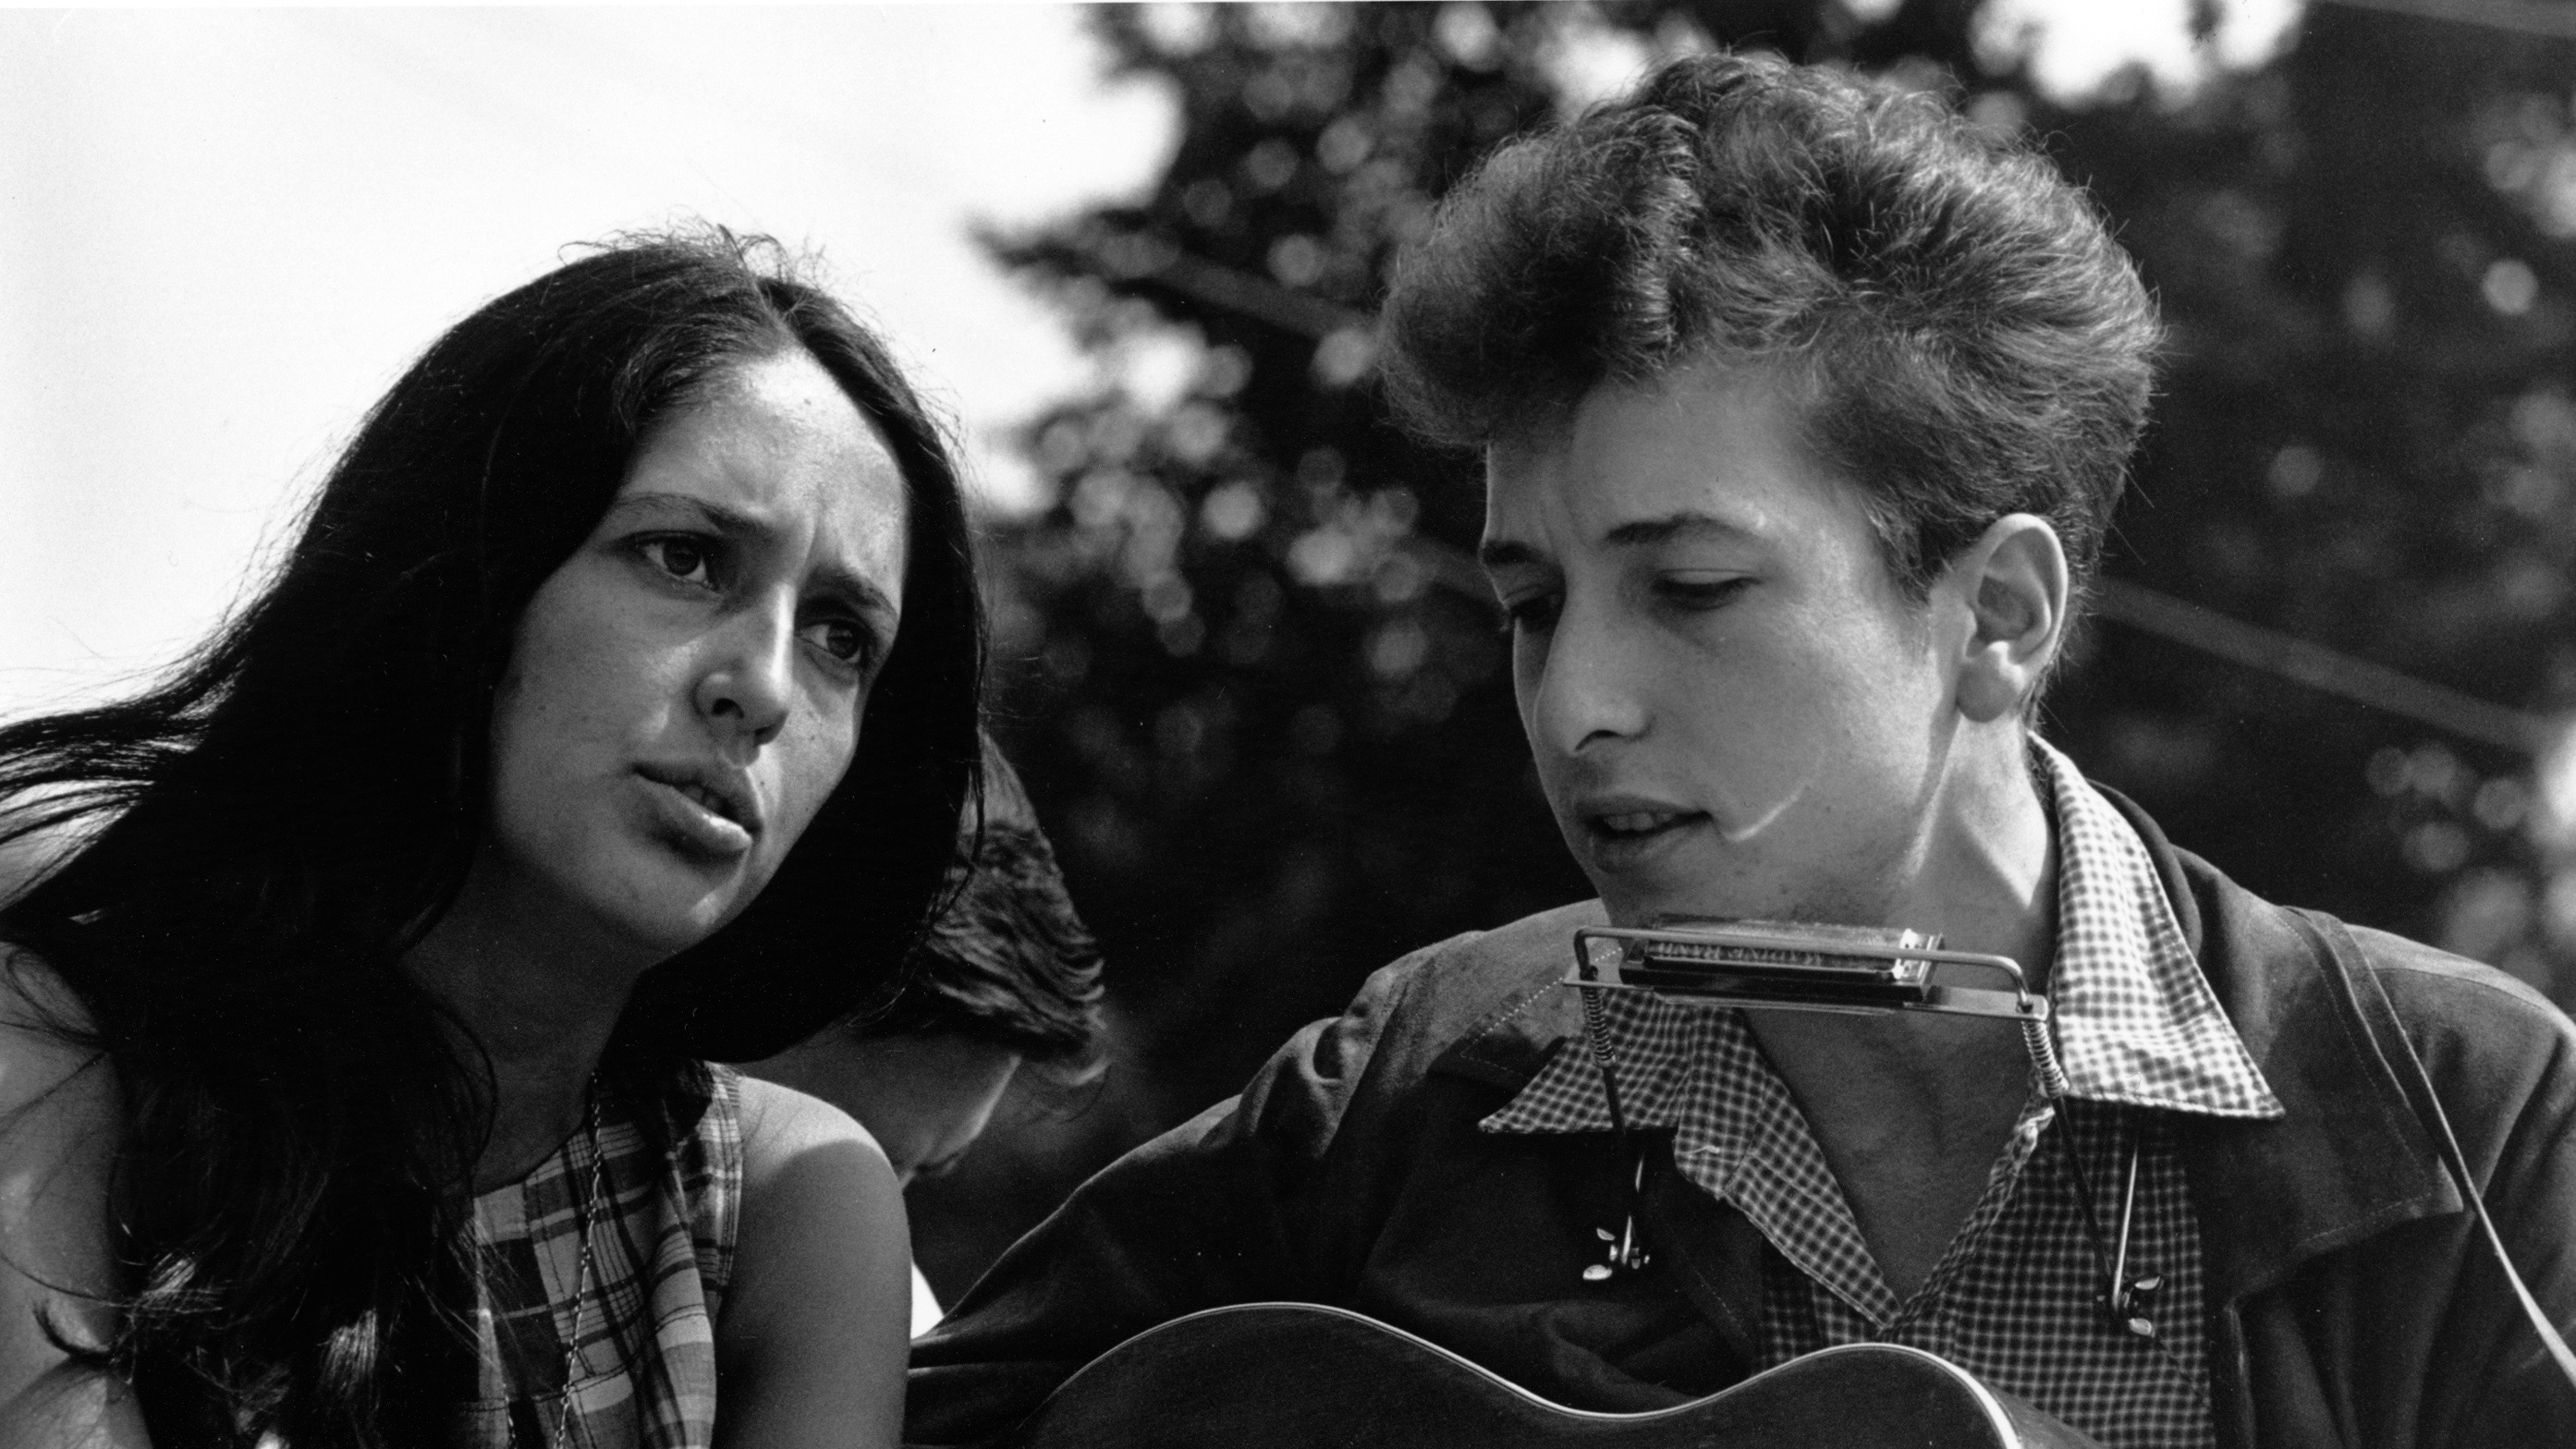 «I Have a Dream»: Joan Baez und Bob Dylan an der Abschlusskundgebung des «Civil Rights March on Washington» (28. August 1963).